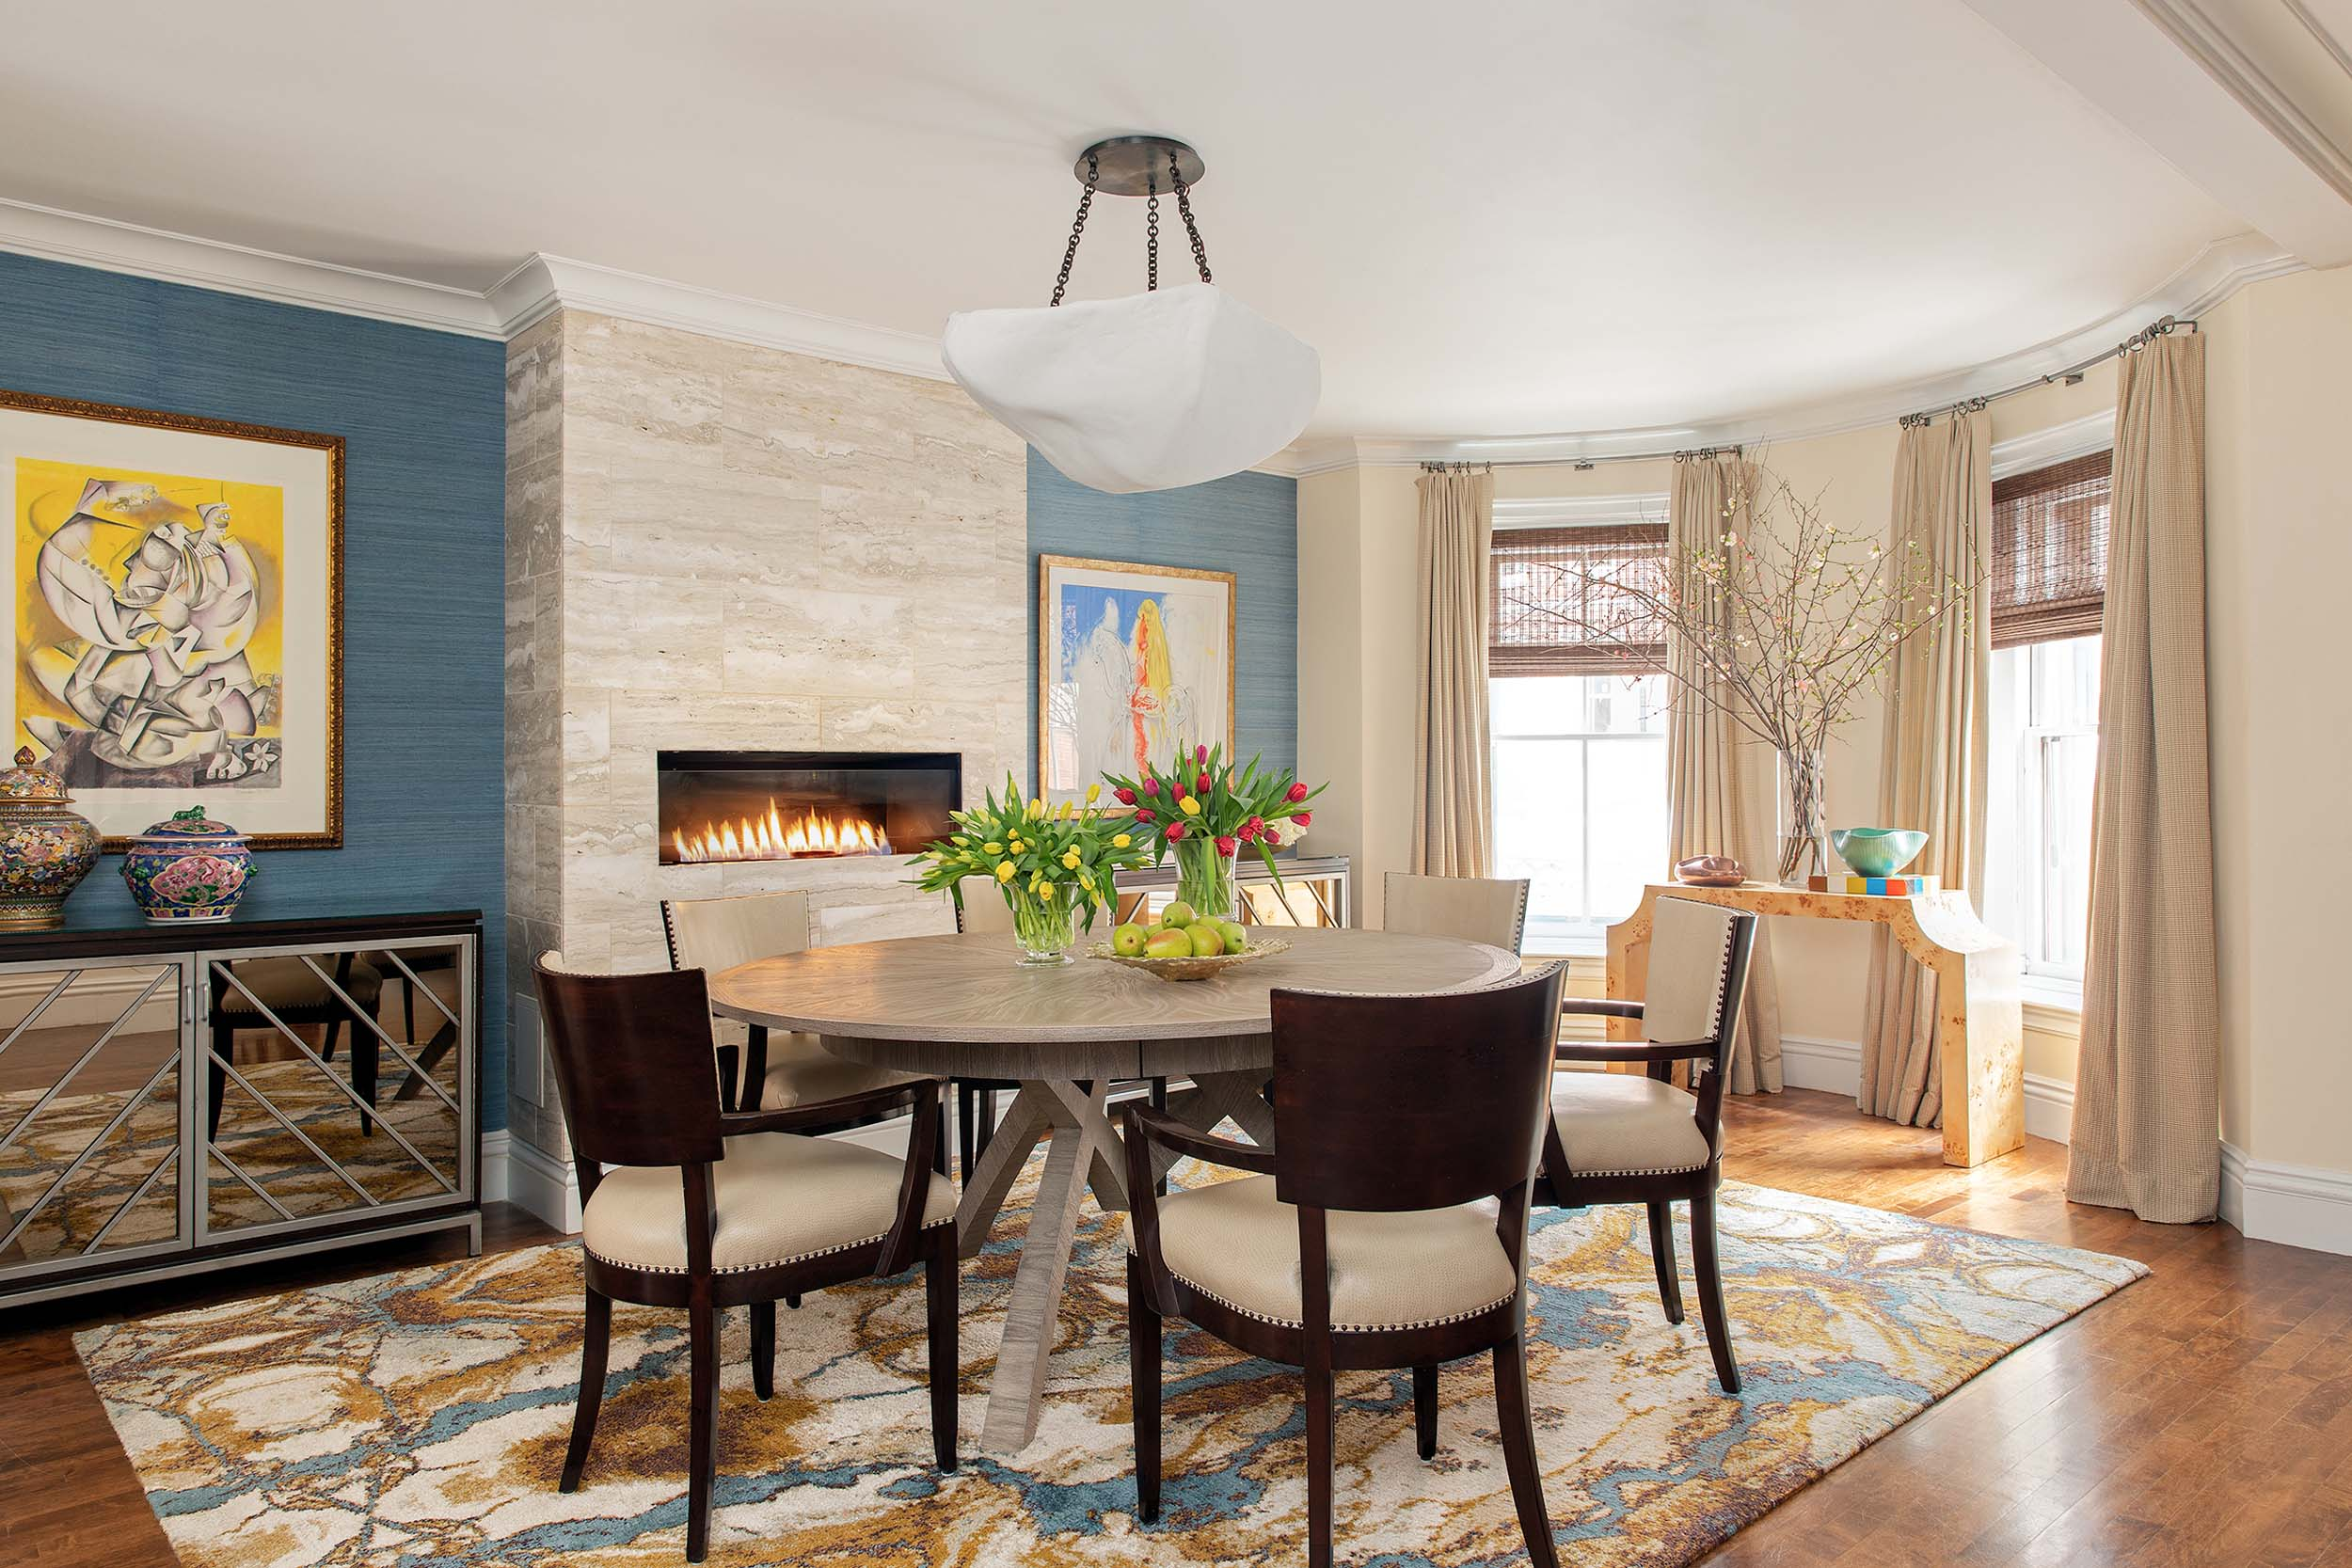 6-Transitional-Contemporary-Top-fireplace-dining-room-table-chandelier-ideas-Decorator-Best-Interior-Designers-Boston-South-End-Back-Bay-Cambridge-Dane-Austin-Design.jpg